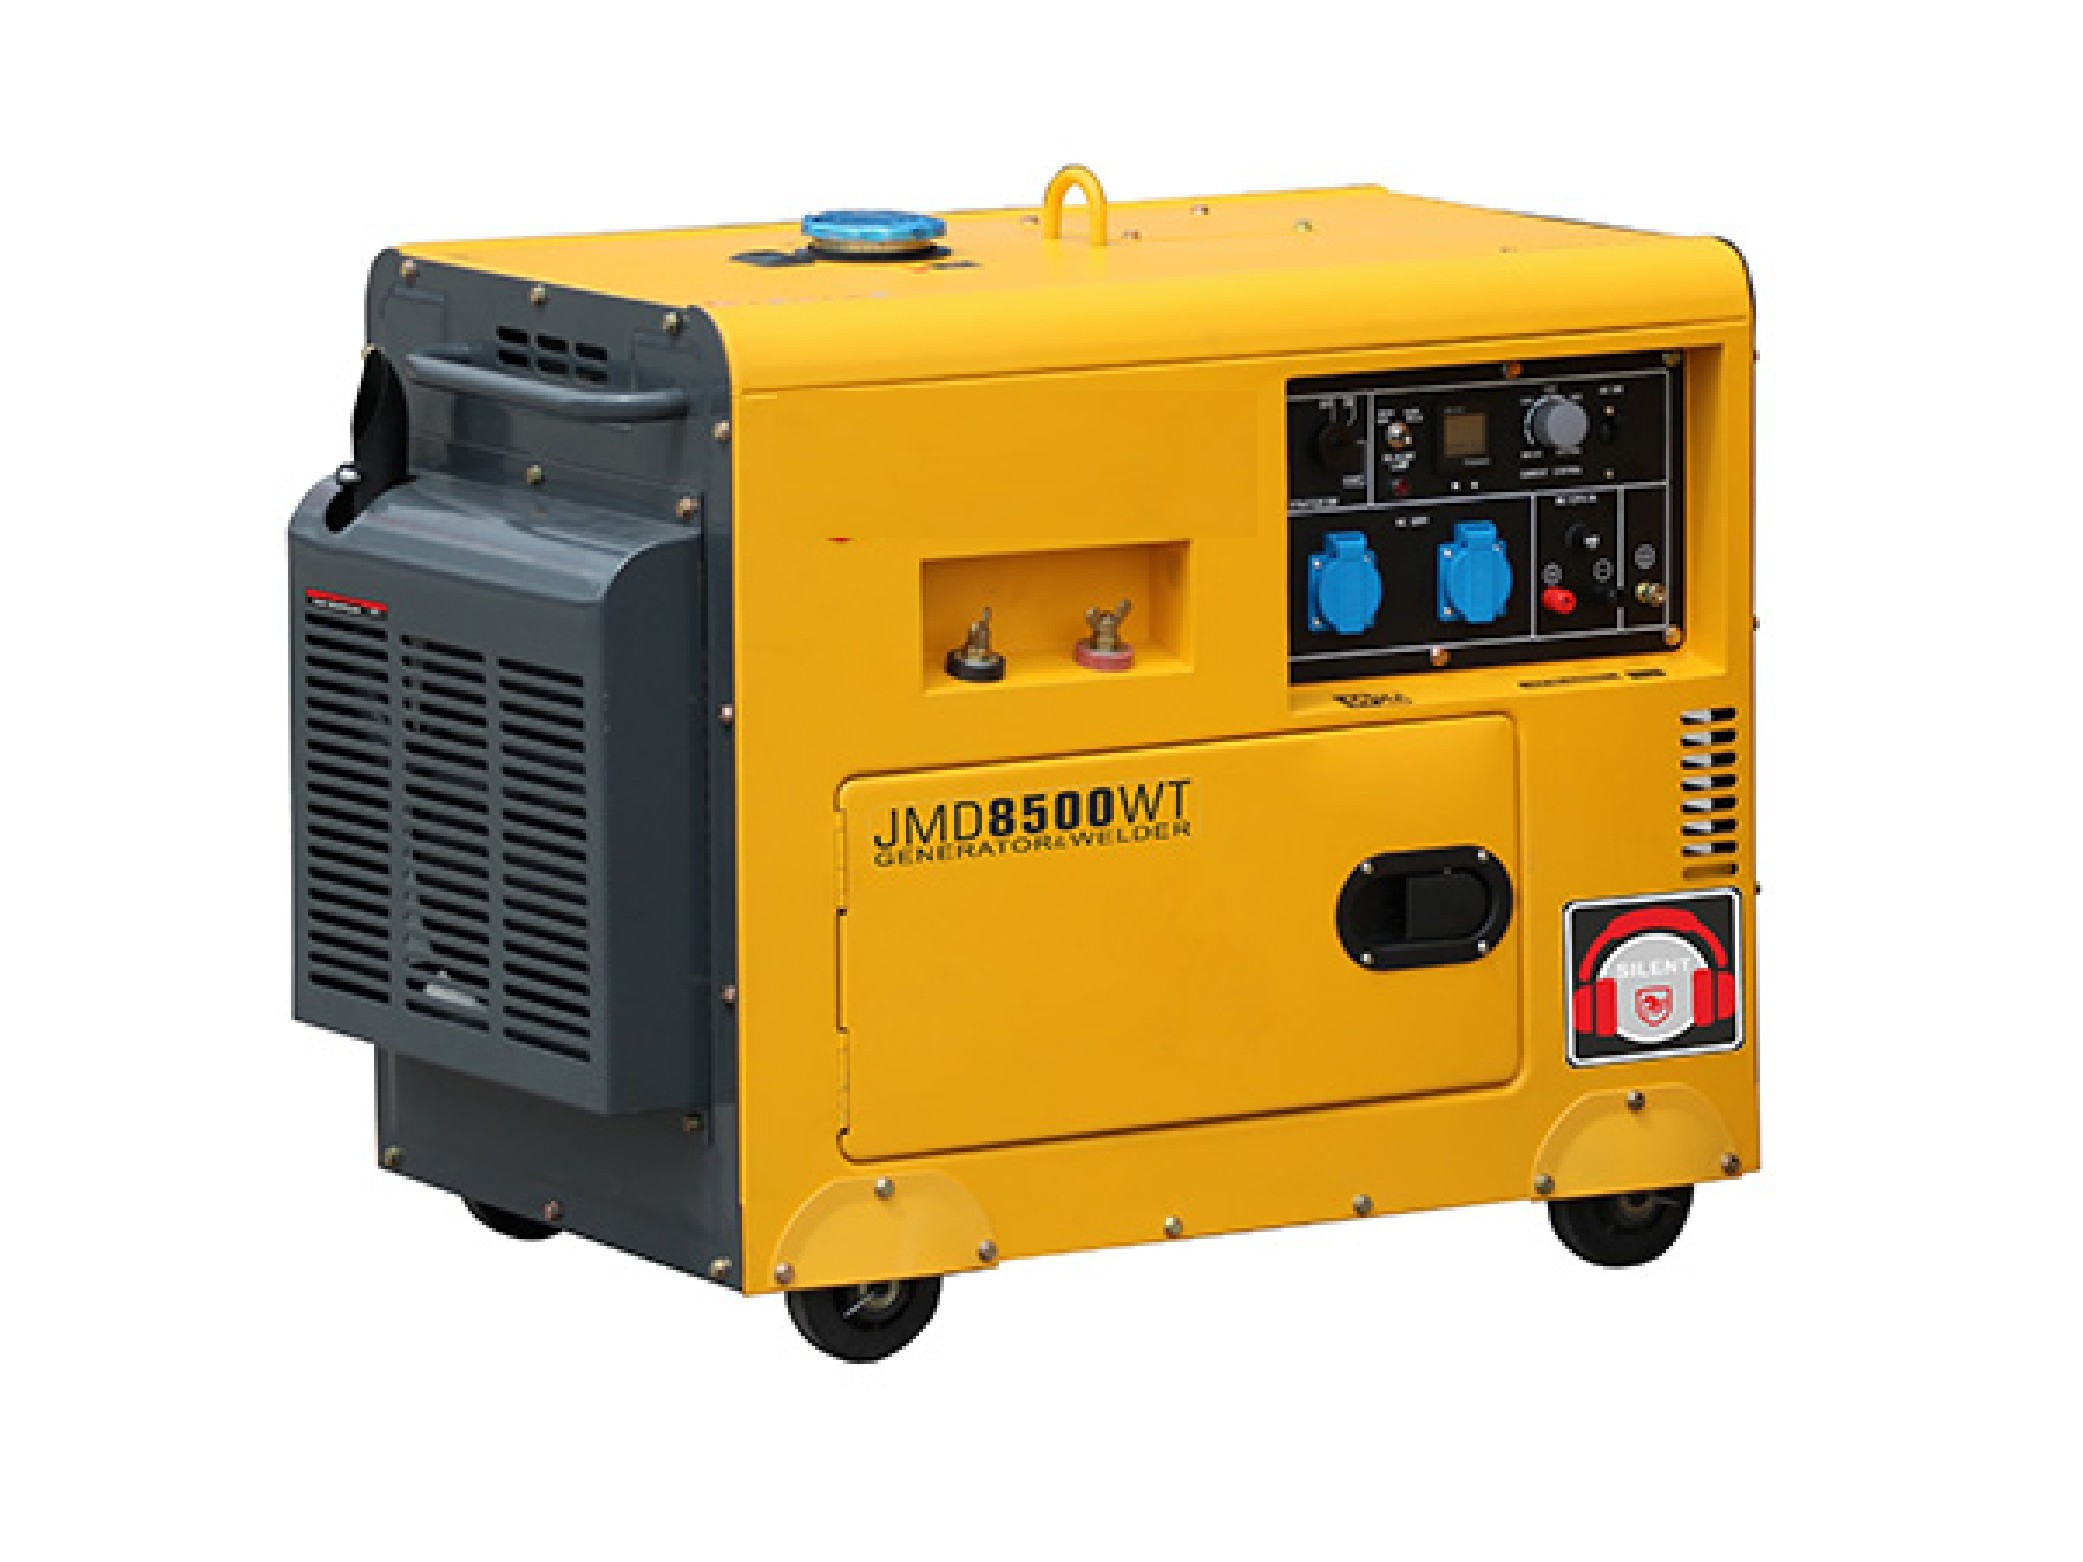 Electric Power General Diesel Generator Quiet 5000 W 50 60 HZ